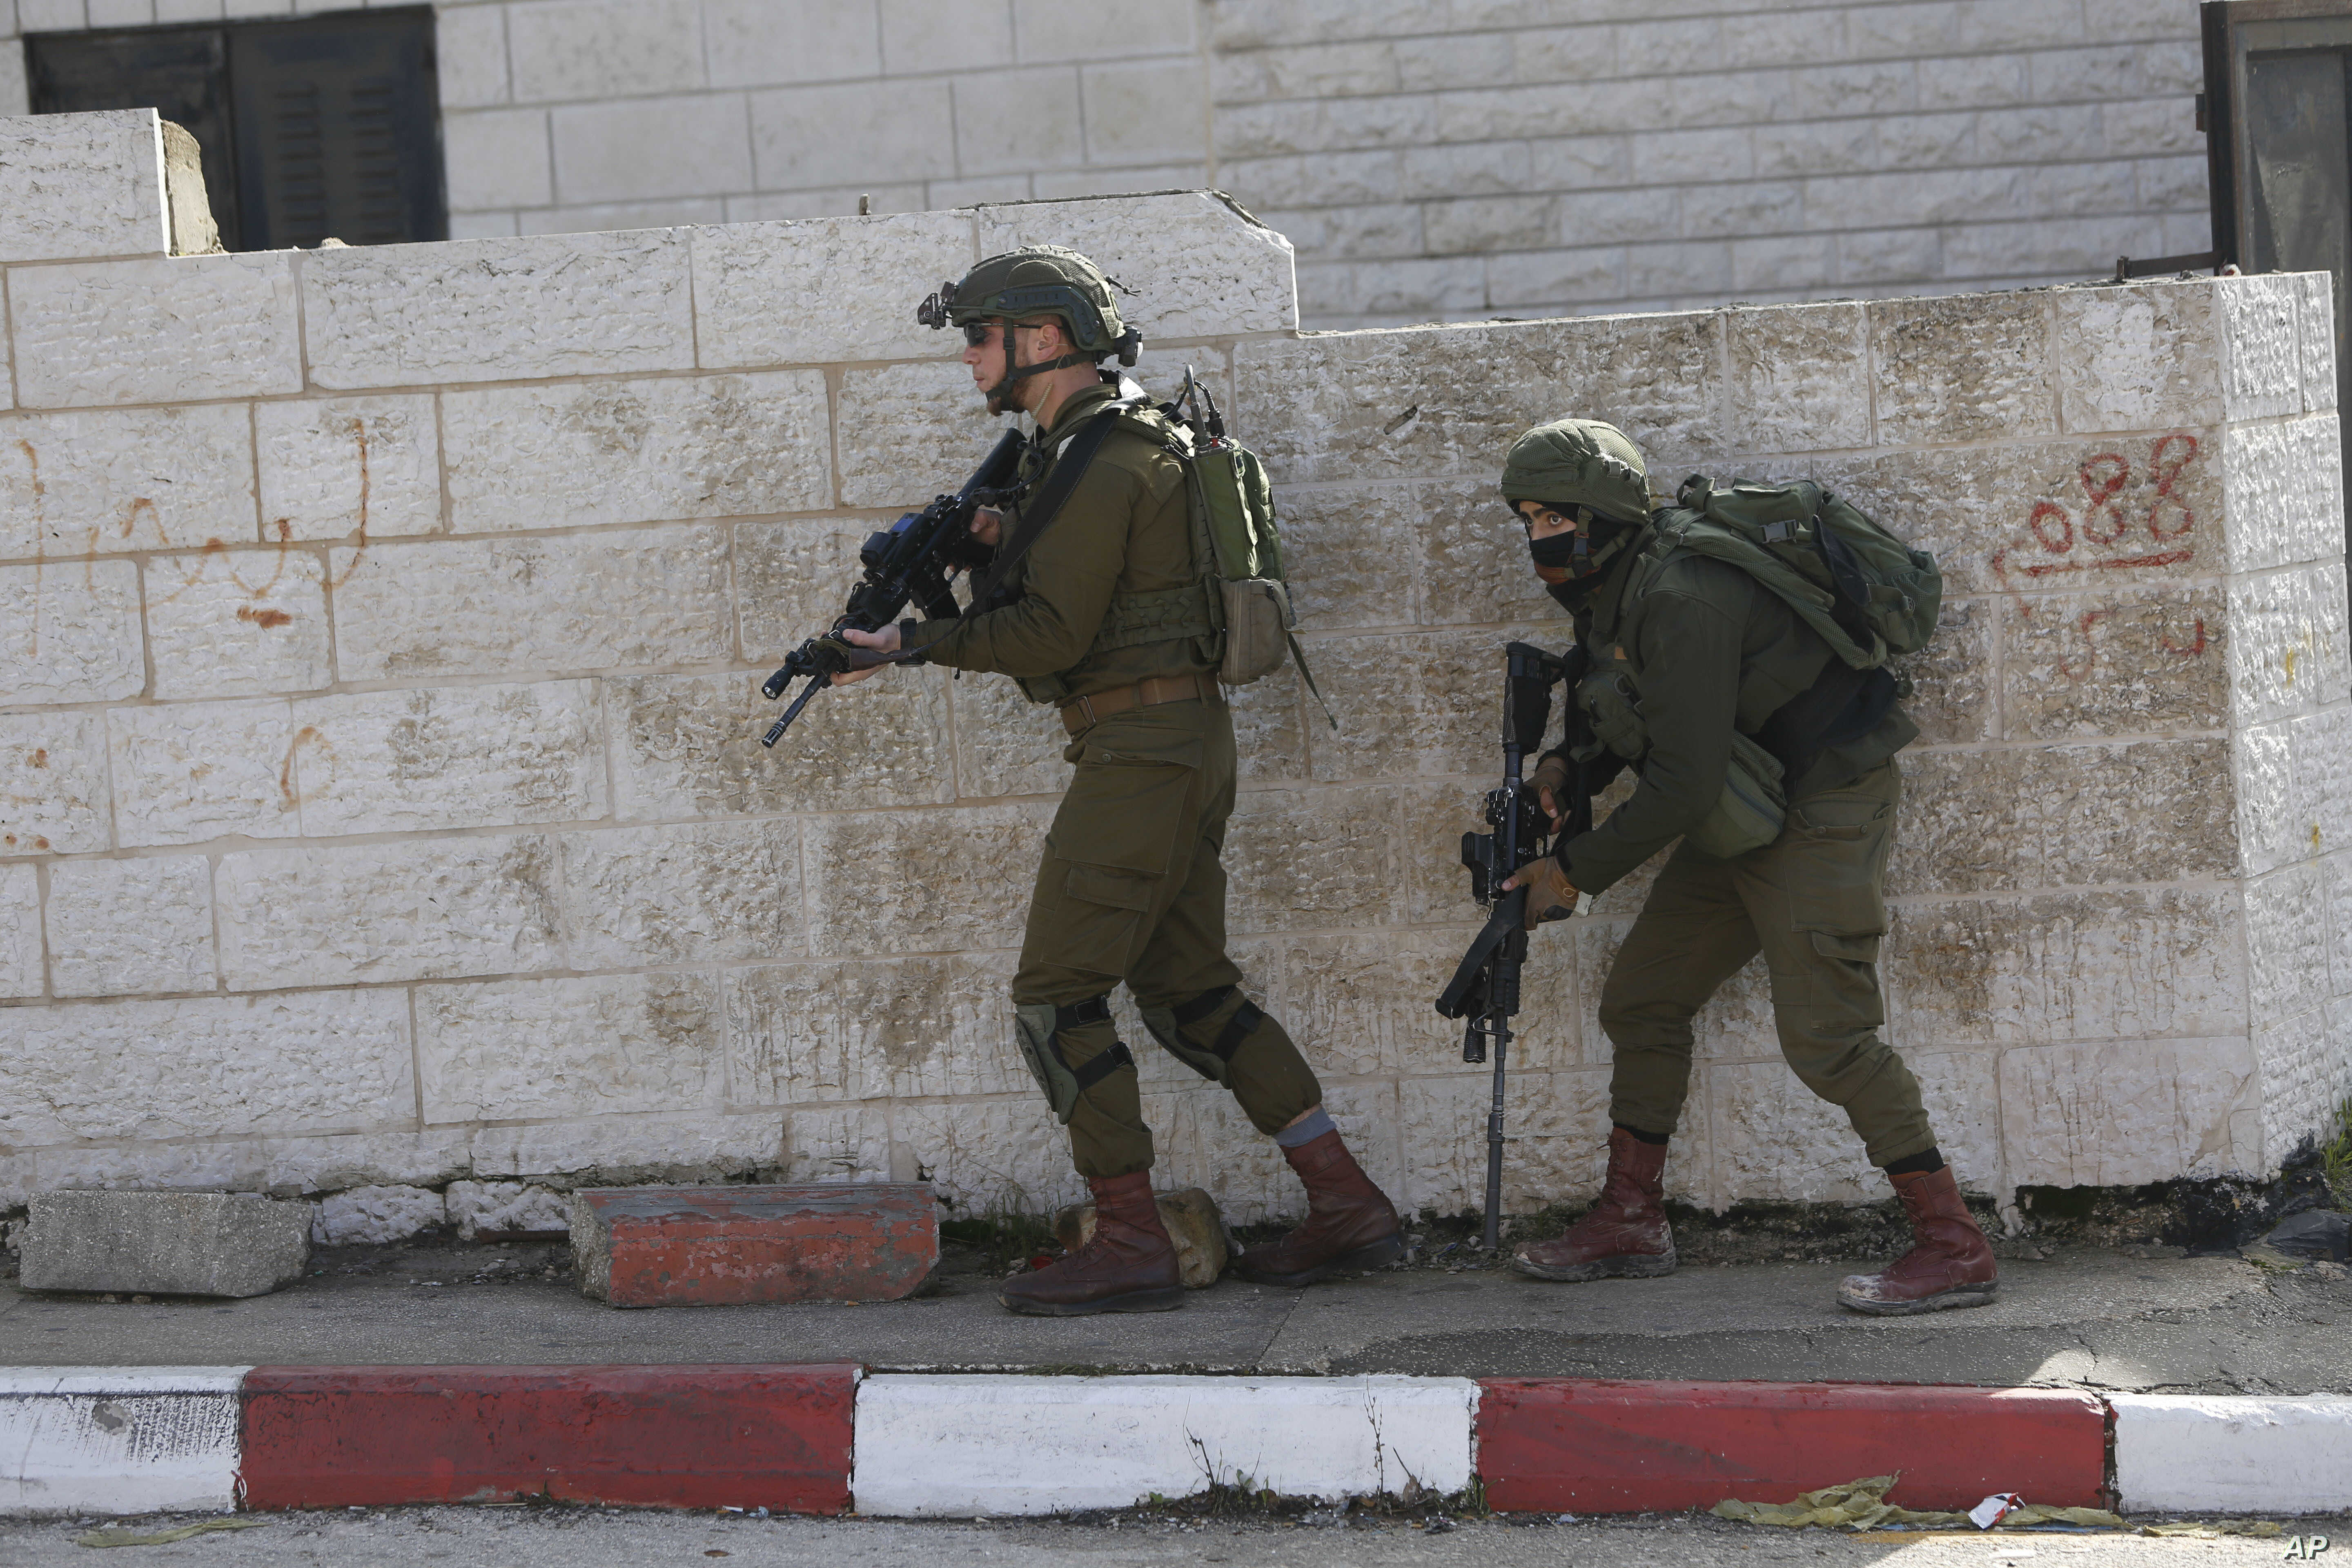 Israeli soldiers conduct a search for suspects of a shooting attack on Dec. 9, 2018 in the West Bank City of Ramallah, Dec. 10, 2018.